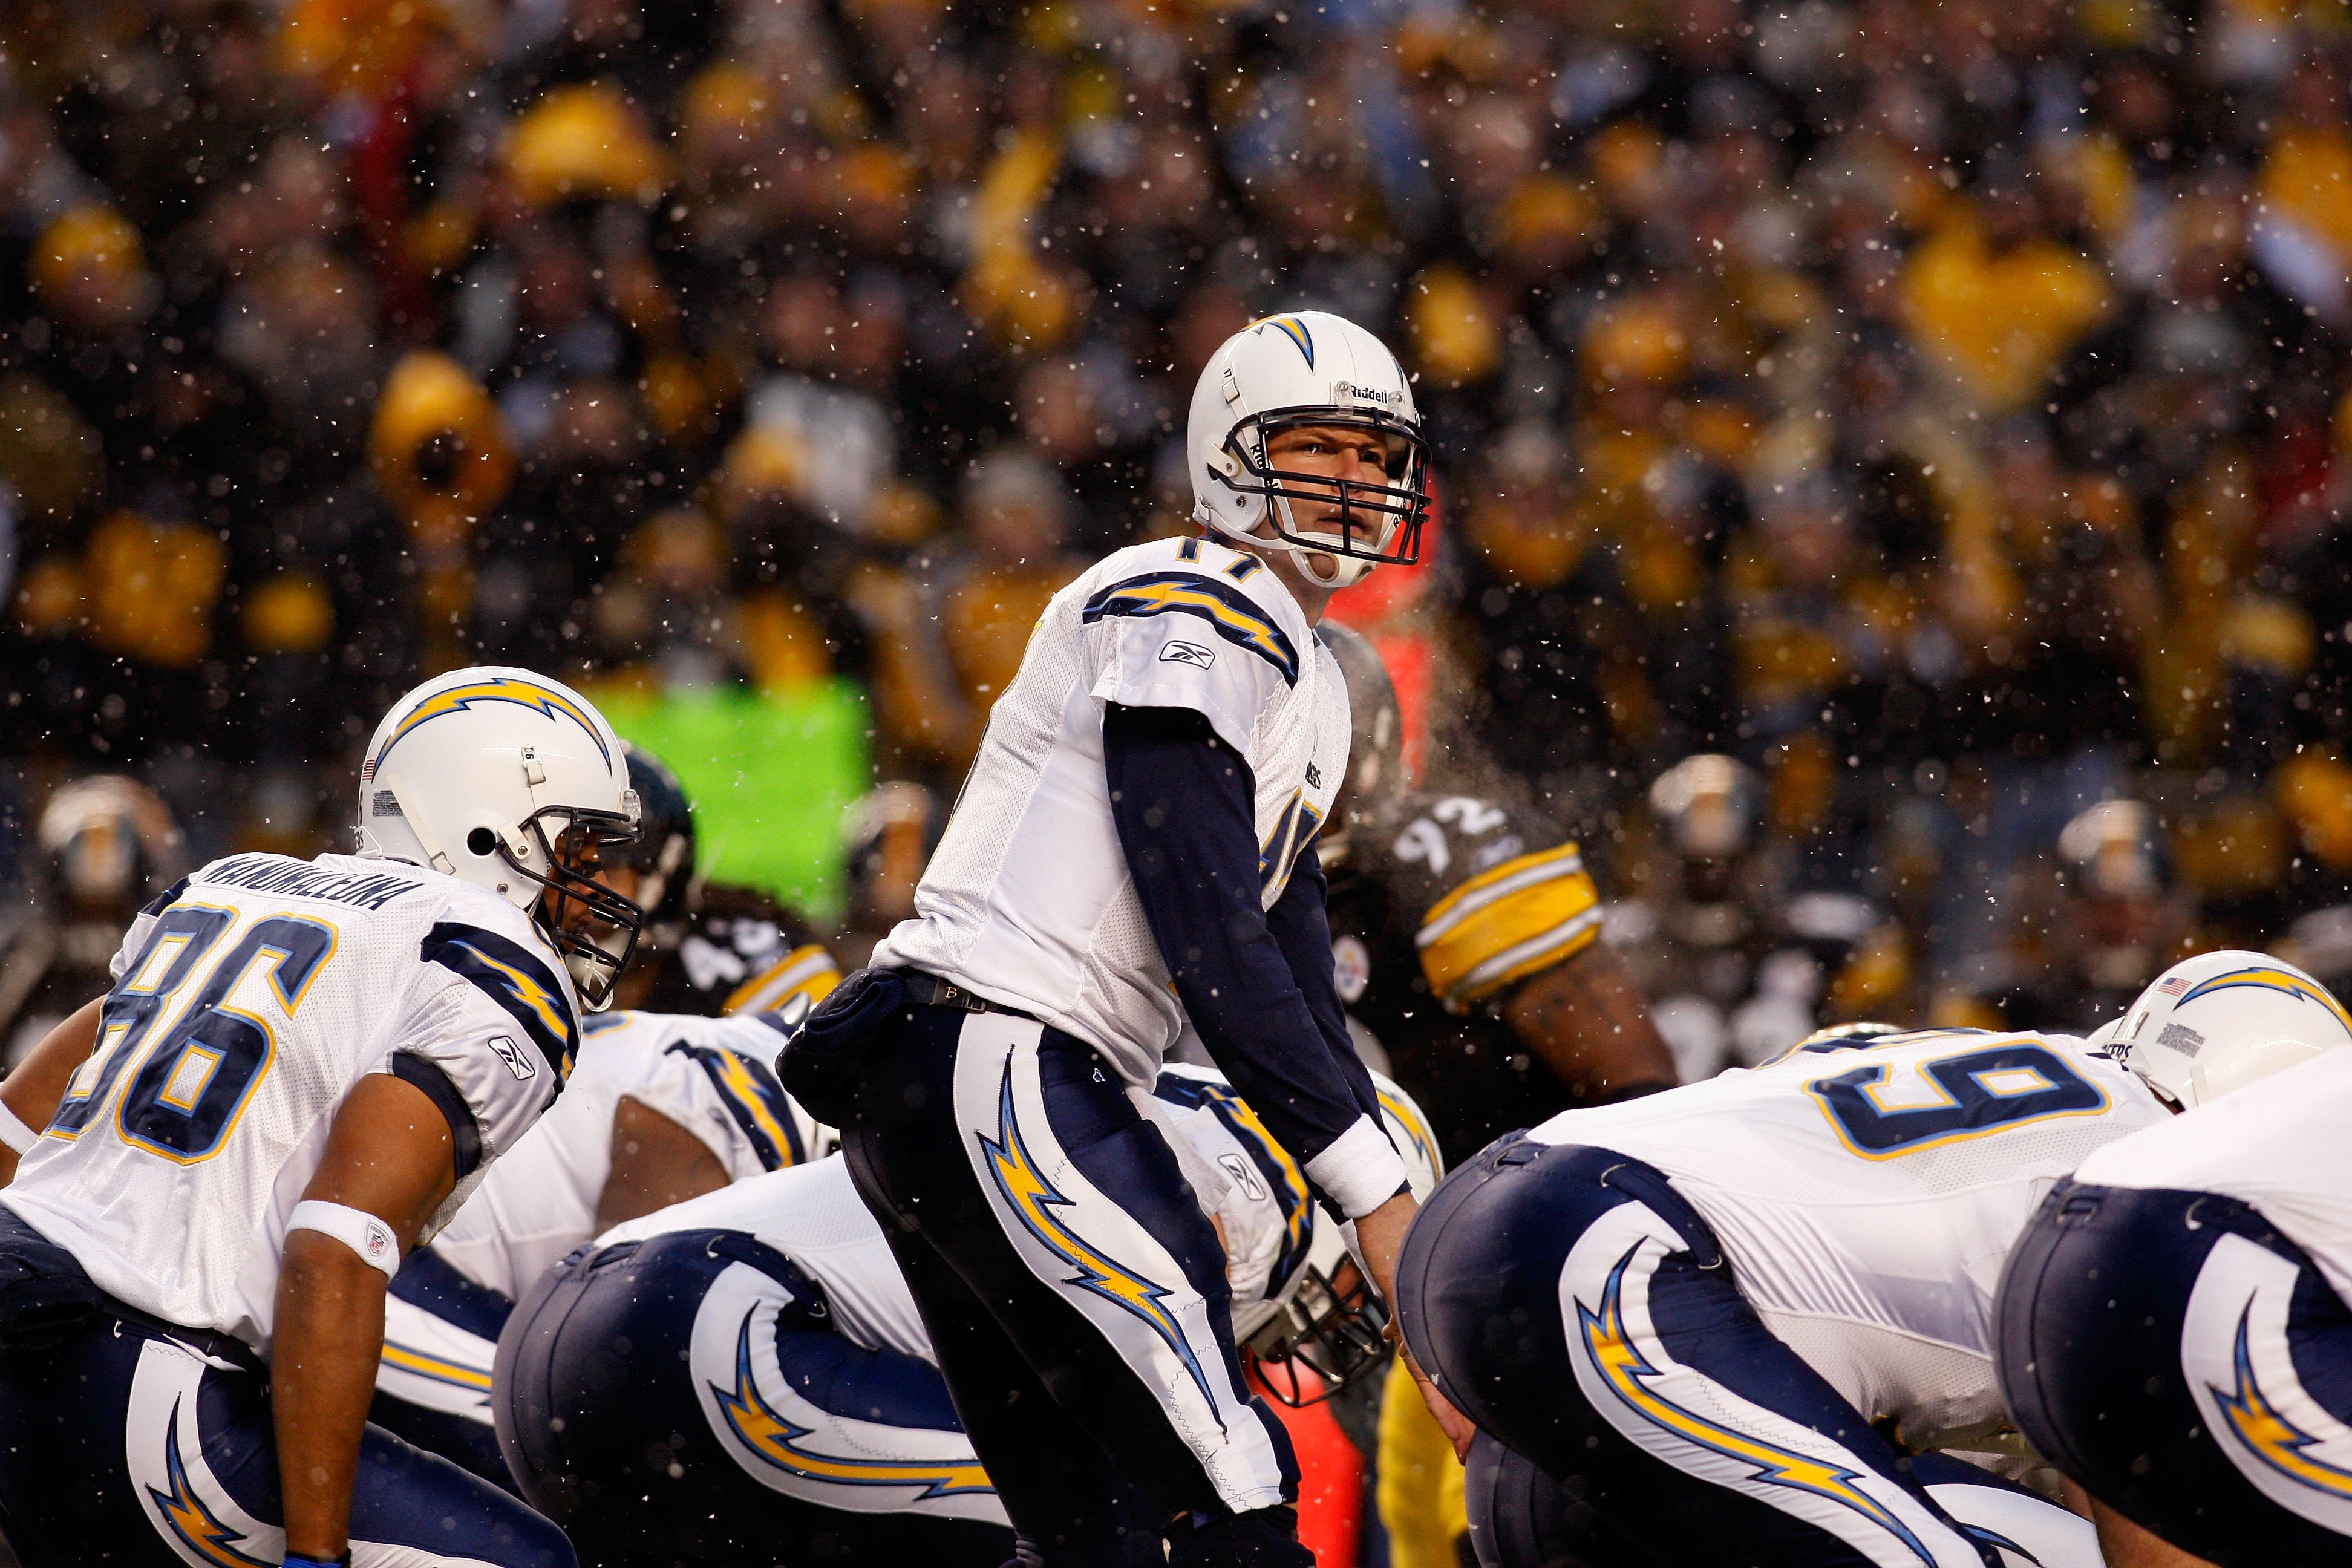 PITTSBURGH - JANUARY 11:  Snow falls as Philip Rivers #17 of the San Diego Chargers calls out signals at the line of scrimmage against the Pittsburgh Steelers during their AFC Divisional Playoff Game on January 11, 2009 at Heinz Field in Pittsburgh, Penns